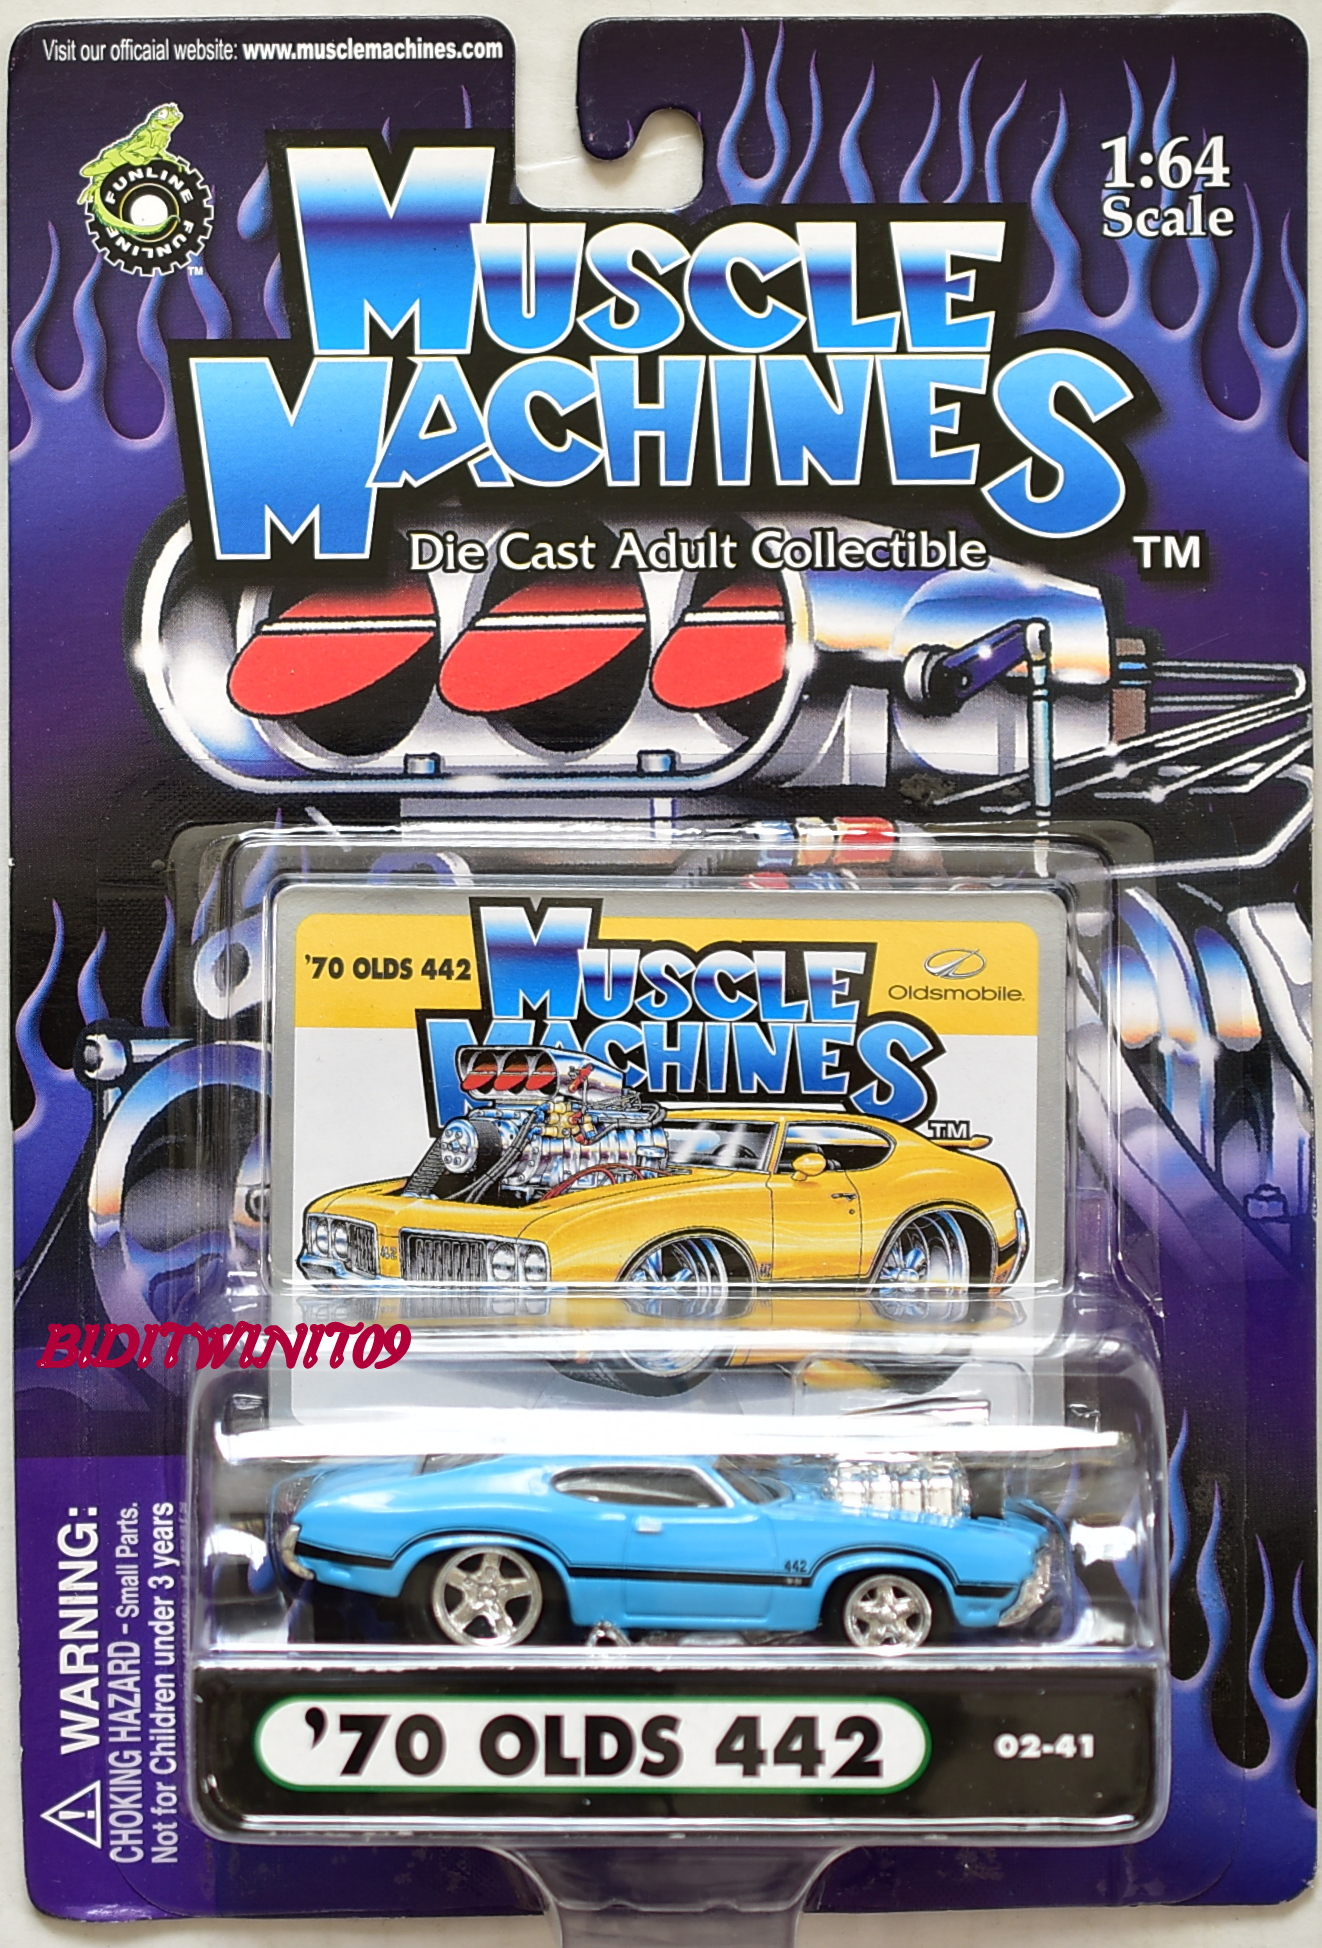 MUSCLE MACHINES '70 OLDS 442 02-41 SCALE 1:64 E+